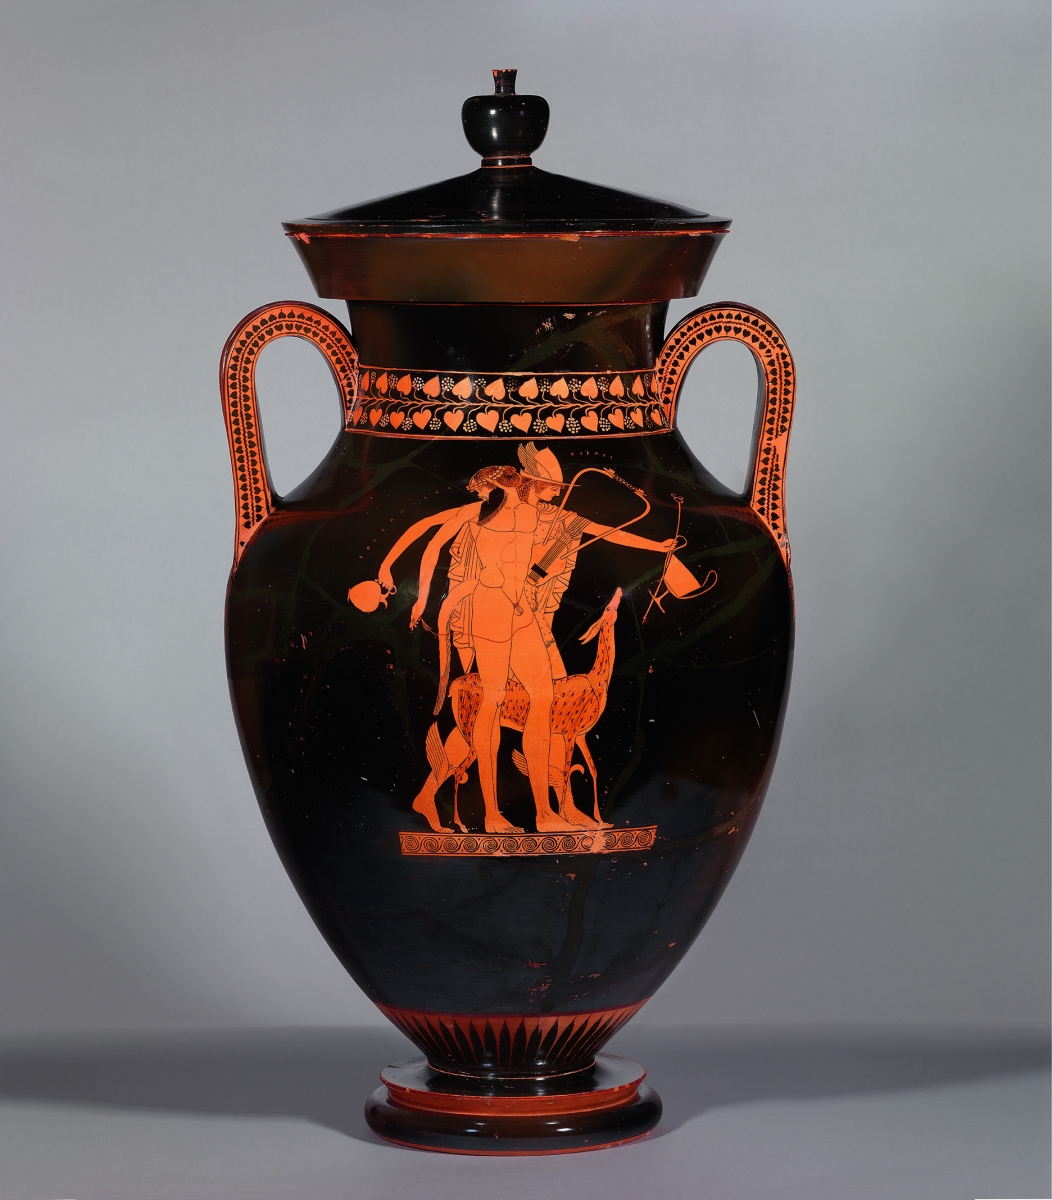 Greek, Attic, ca. 500–490 B.C., attributed to the Berlin Painter. Red-figure amphora of Type A, with satyr and Hermes. Ceramic, h. with lid 81.5 cm. Antikensammlung, Staatliche Museen, Berlin / Preussischer Kulturbesitz